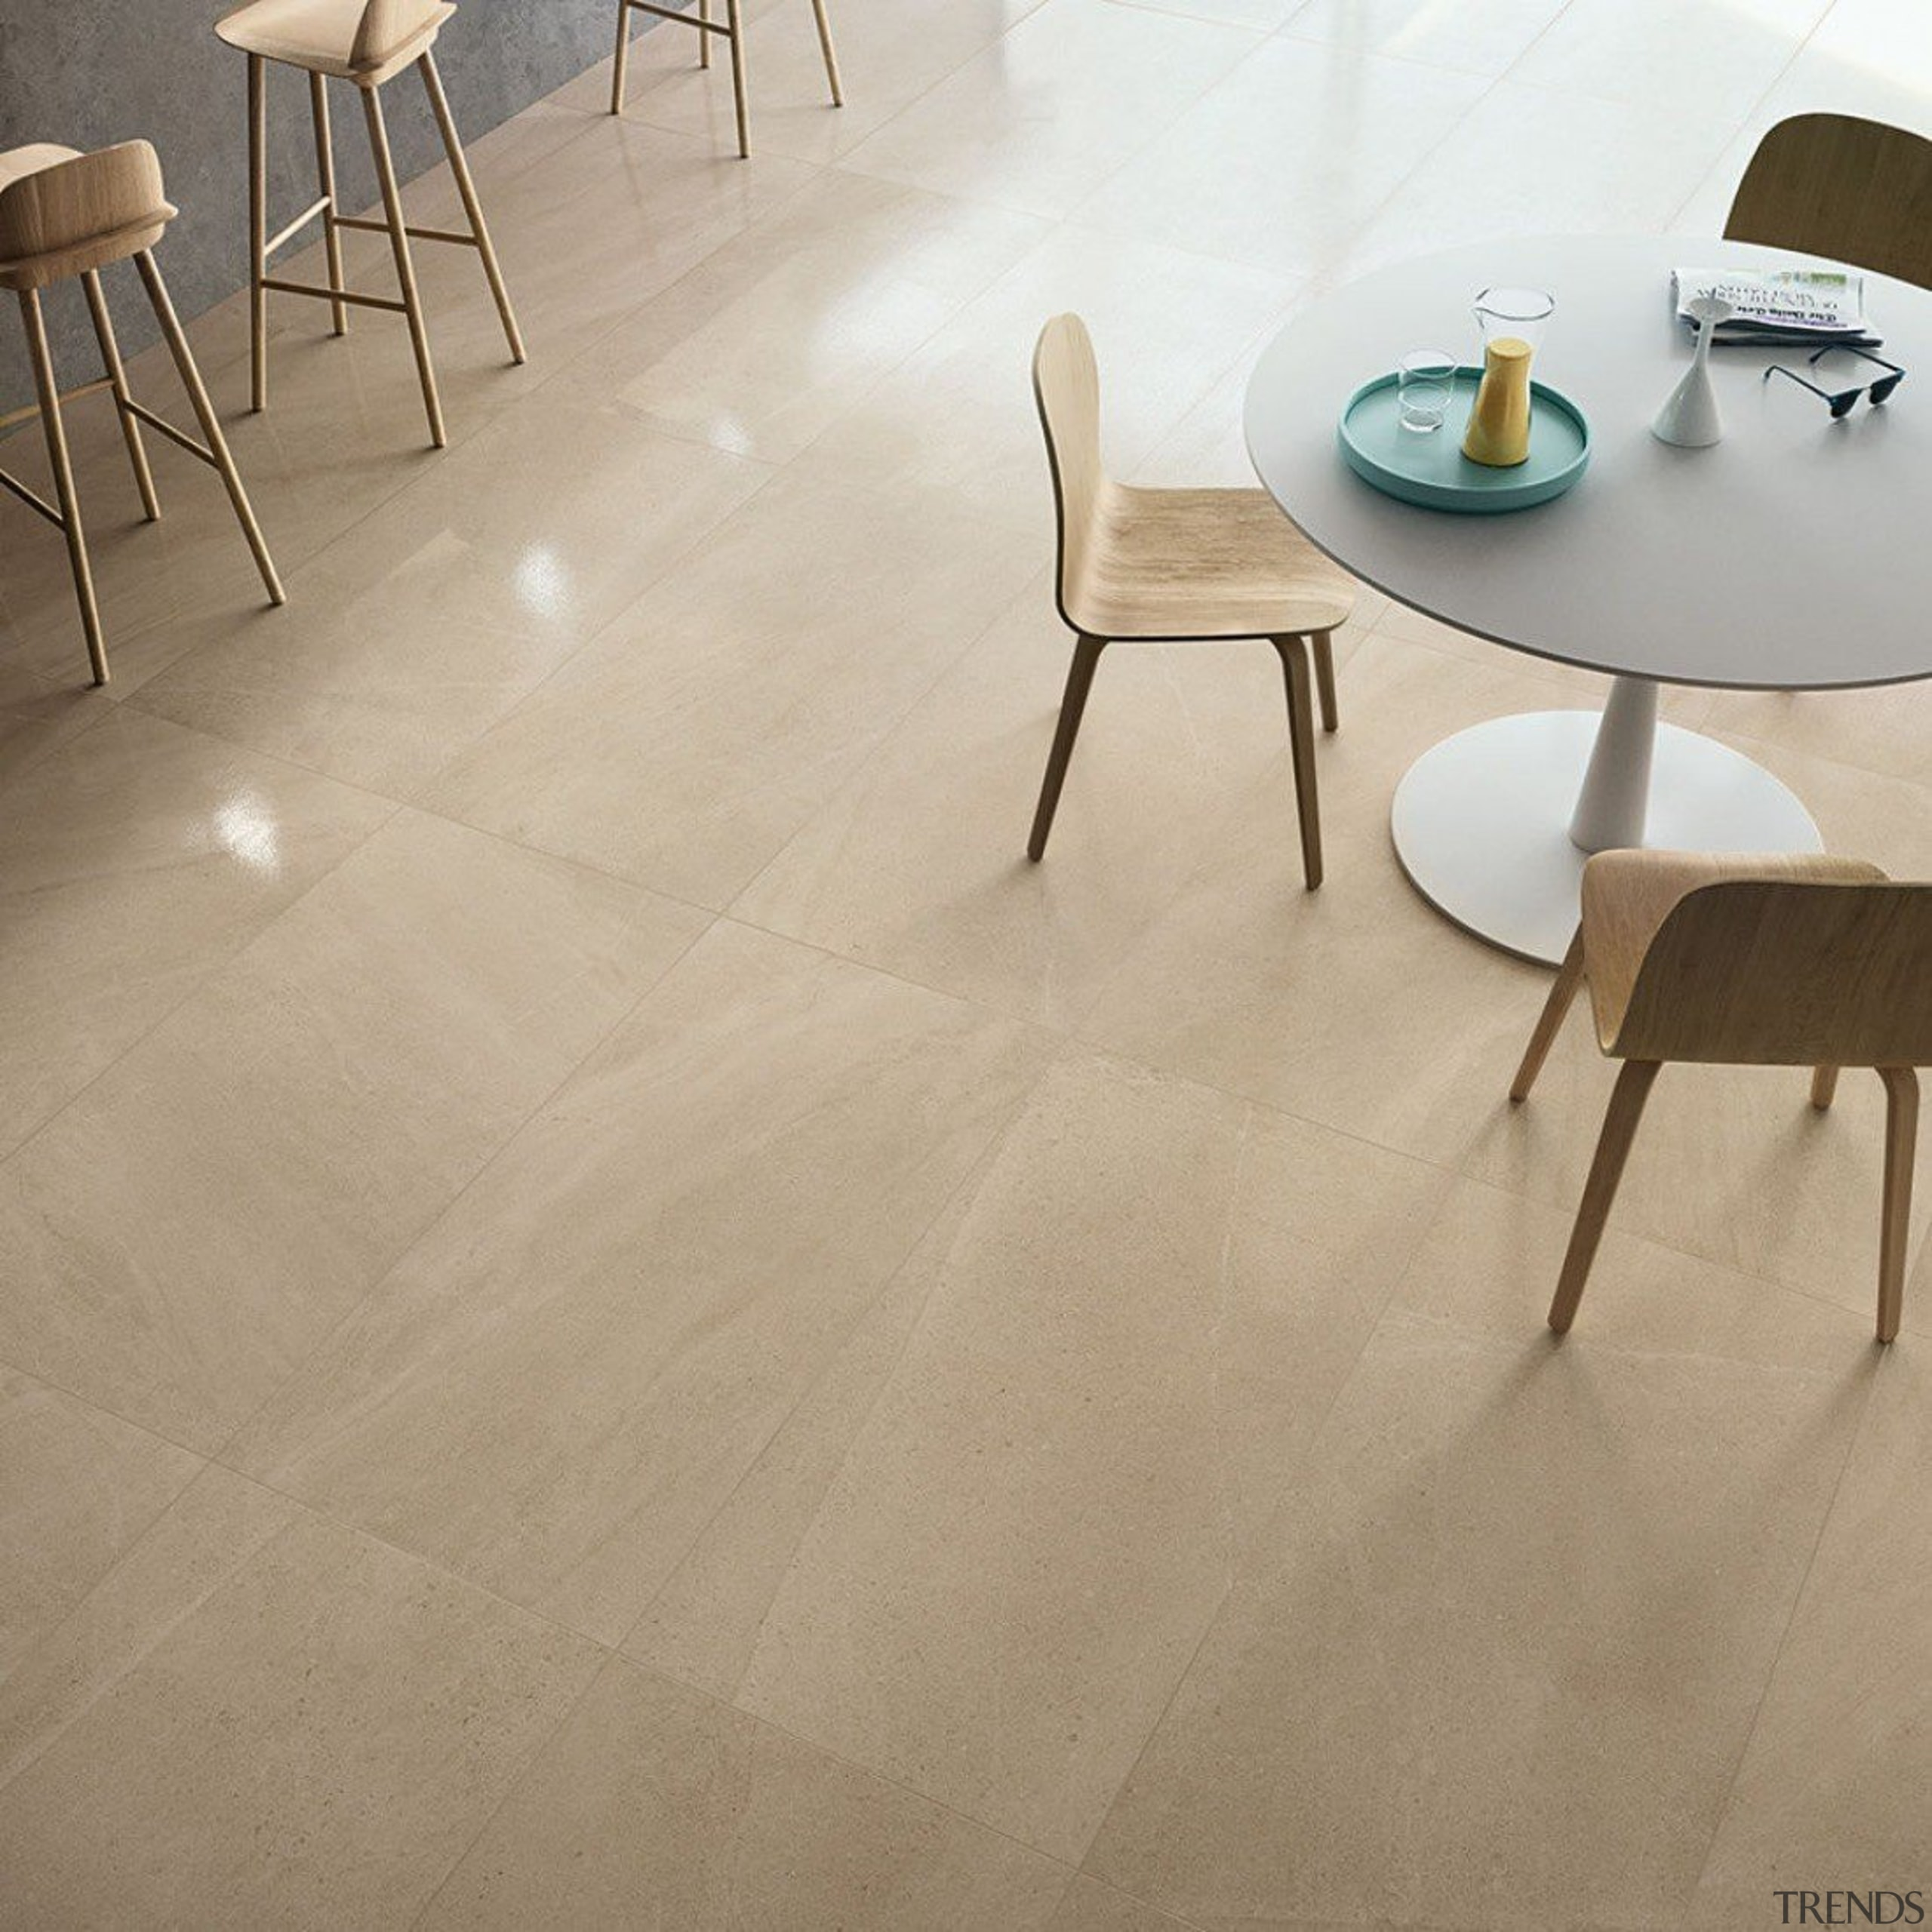 Limestone - chair | floor | flooring | chair, floor, flooring, furniture, hardwood, interior design, laminate flooring, product design, table, tile, wood, wood flooring, orange, brown